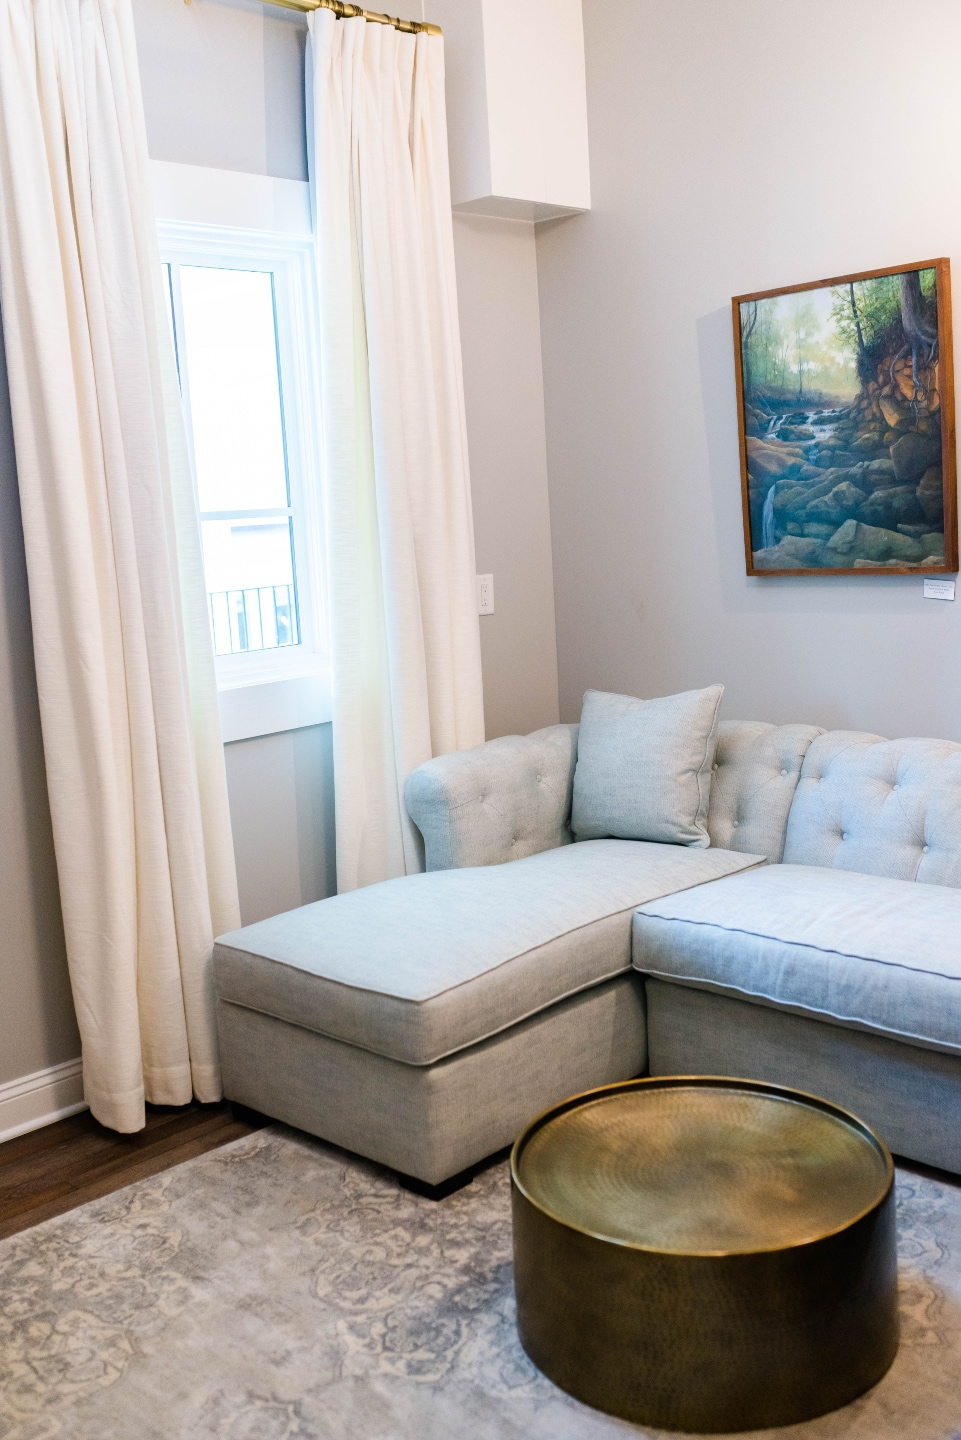 Places to Stay: The Colonial Inn in Hillsborough NC |The Colonial Inn Hillsborough NC by popular NC travel blog, I'm Fixin' To: image of a grey sectional couch and round gold coffee table next to a window with white drapes.